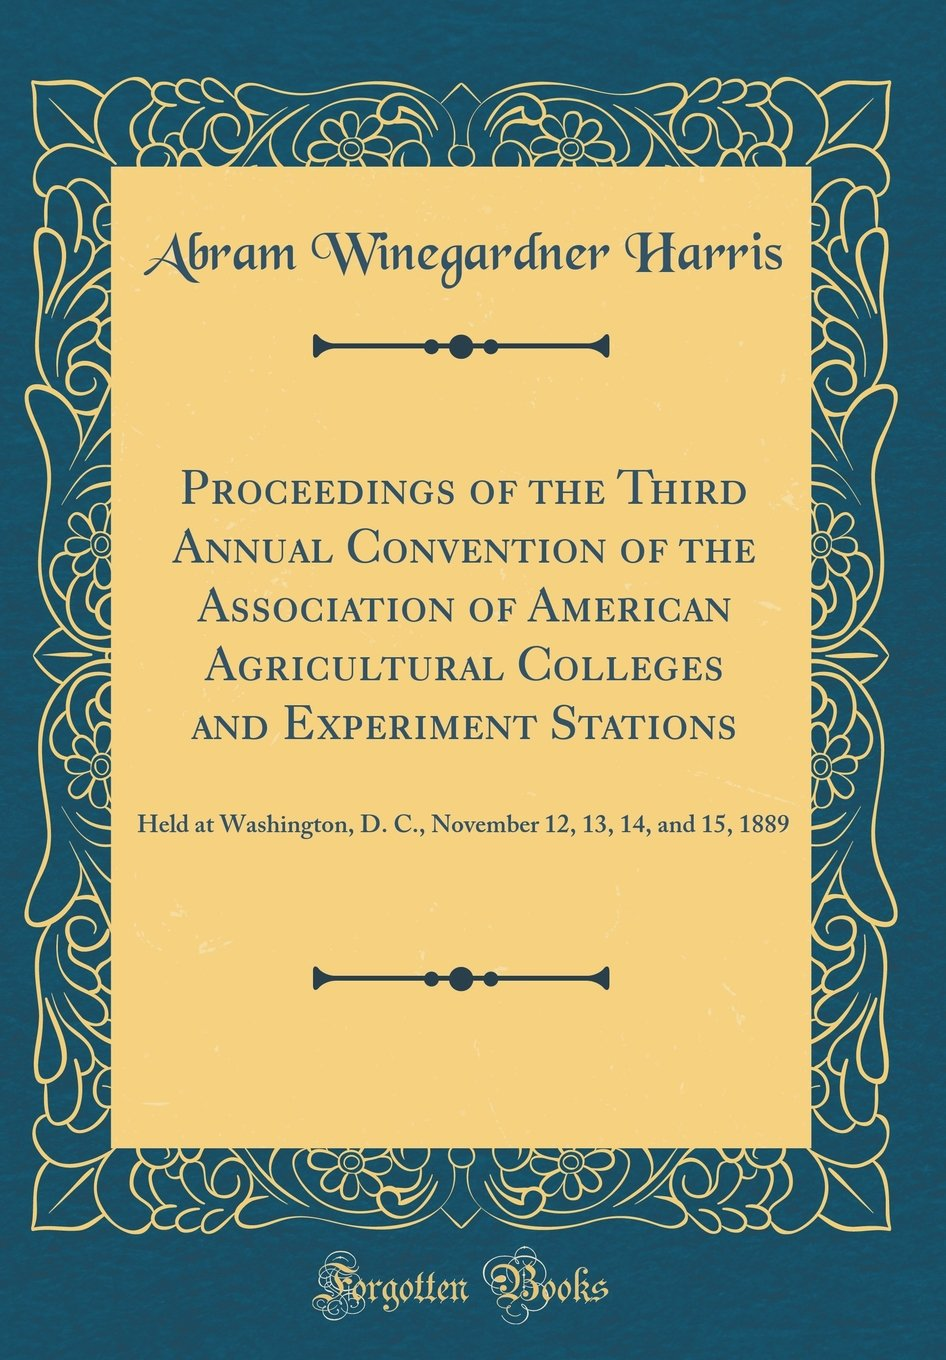 Read Online Proceedings of the Third Annual Convention of the Association of American Agricultural Colleges and Experiment Stations: Held at Washington, D. C., November 12, 13, 14, and 15, 1889 (Classic Reprint) ebook